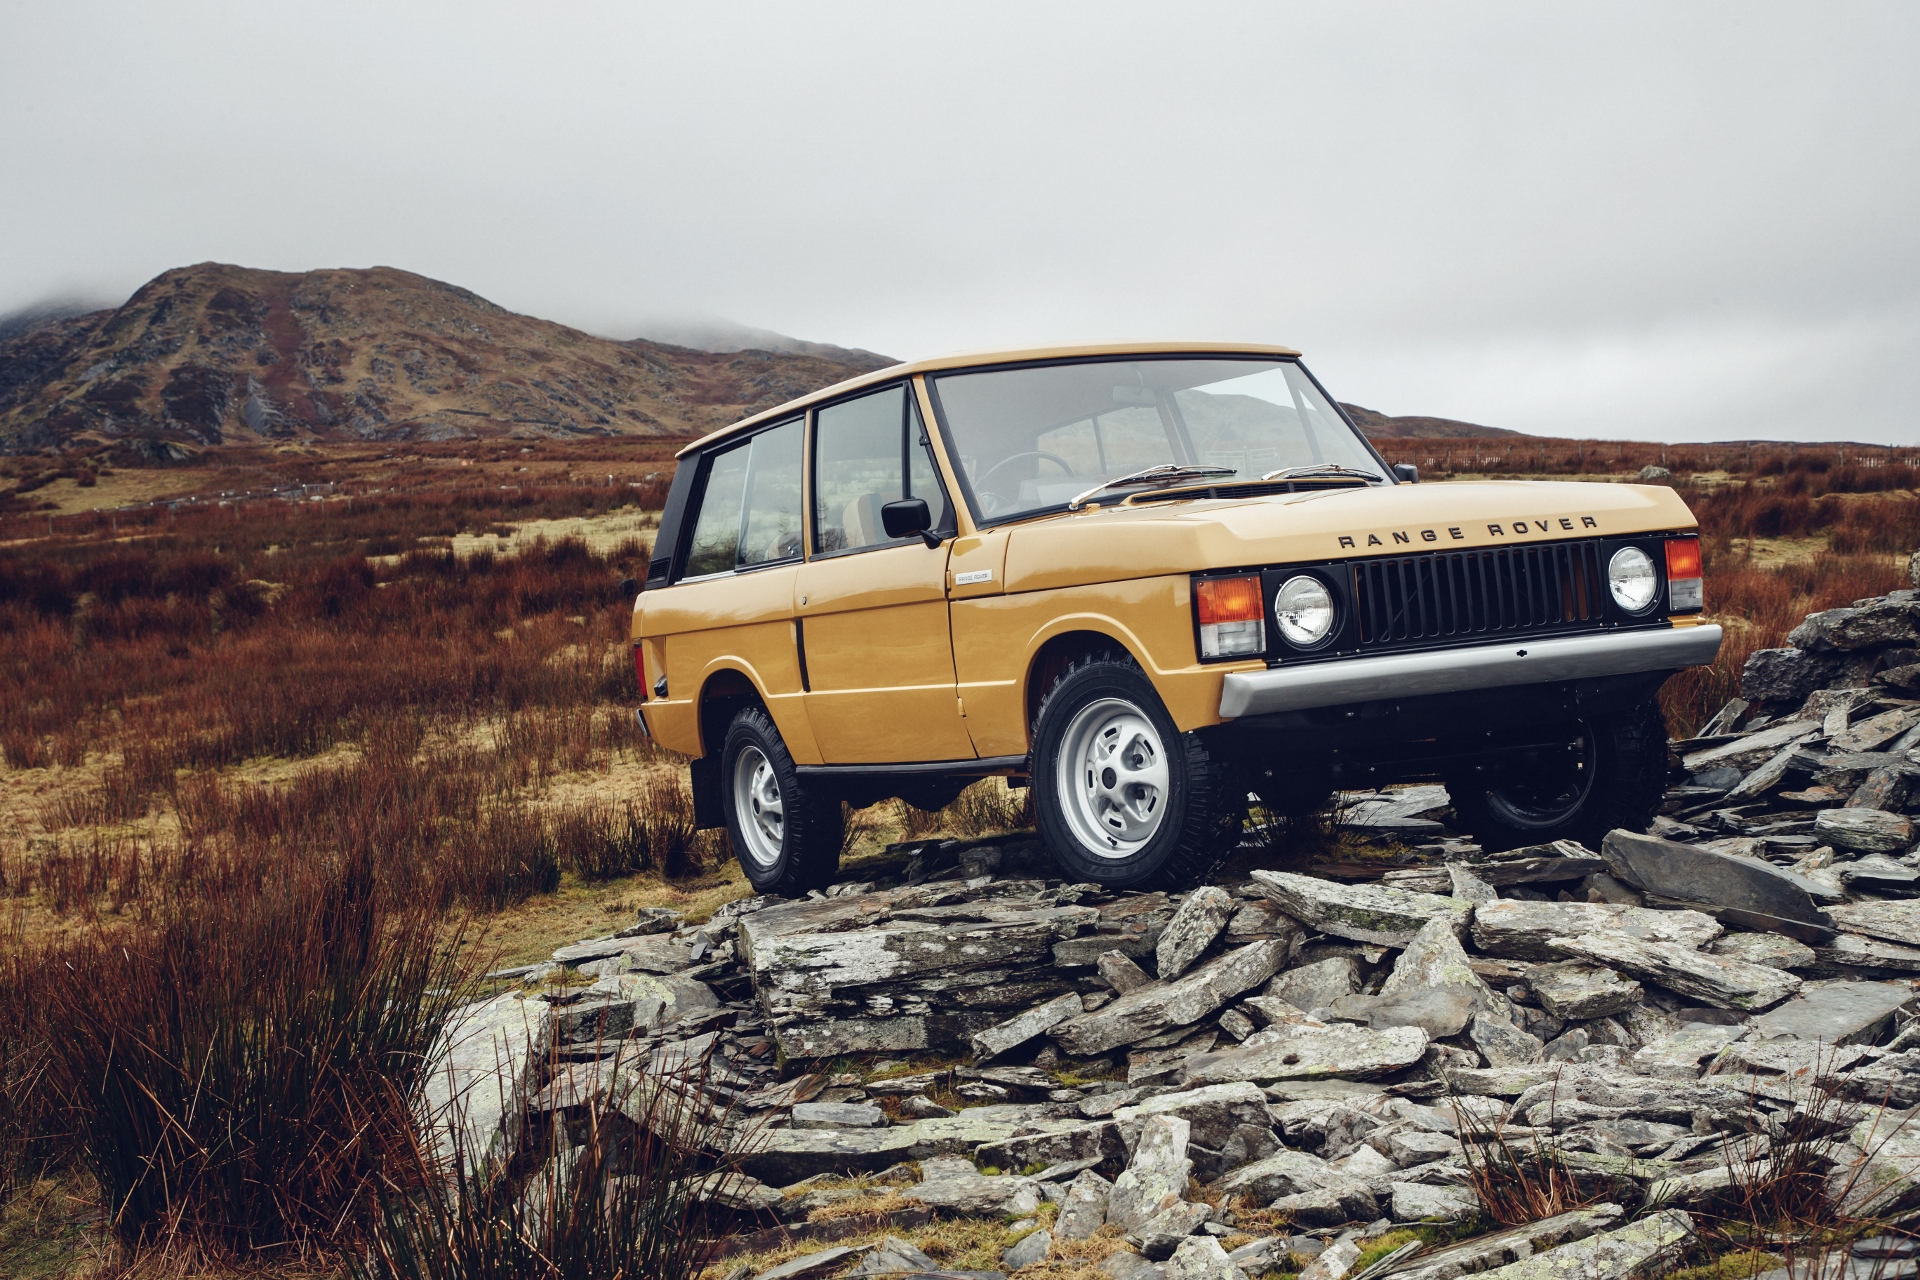 Land Rover offering factory restored first gen Range Rovers